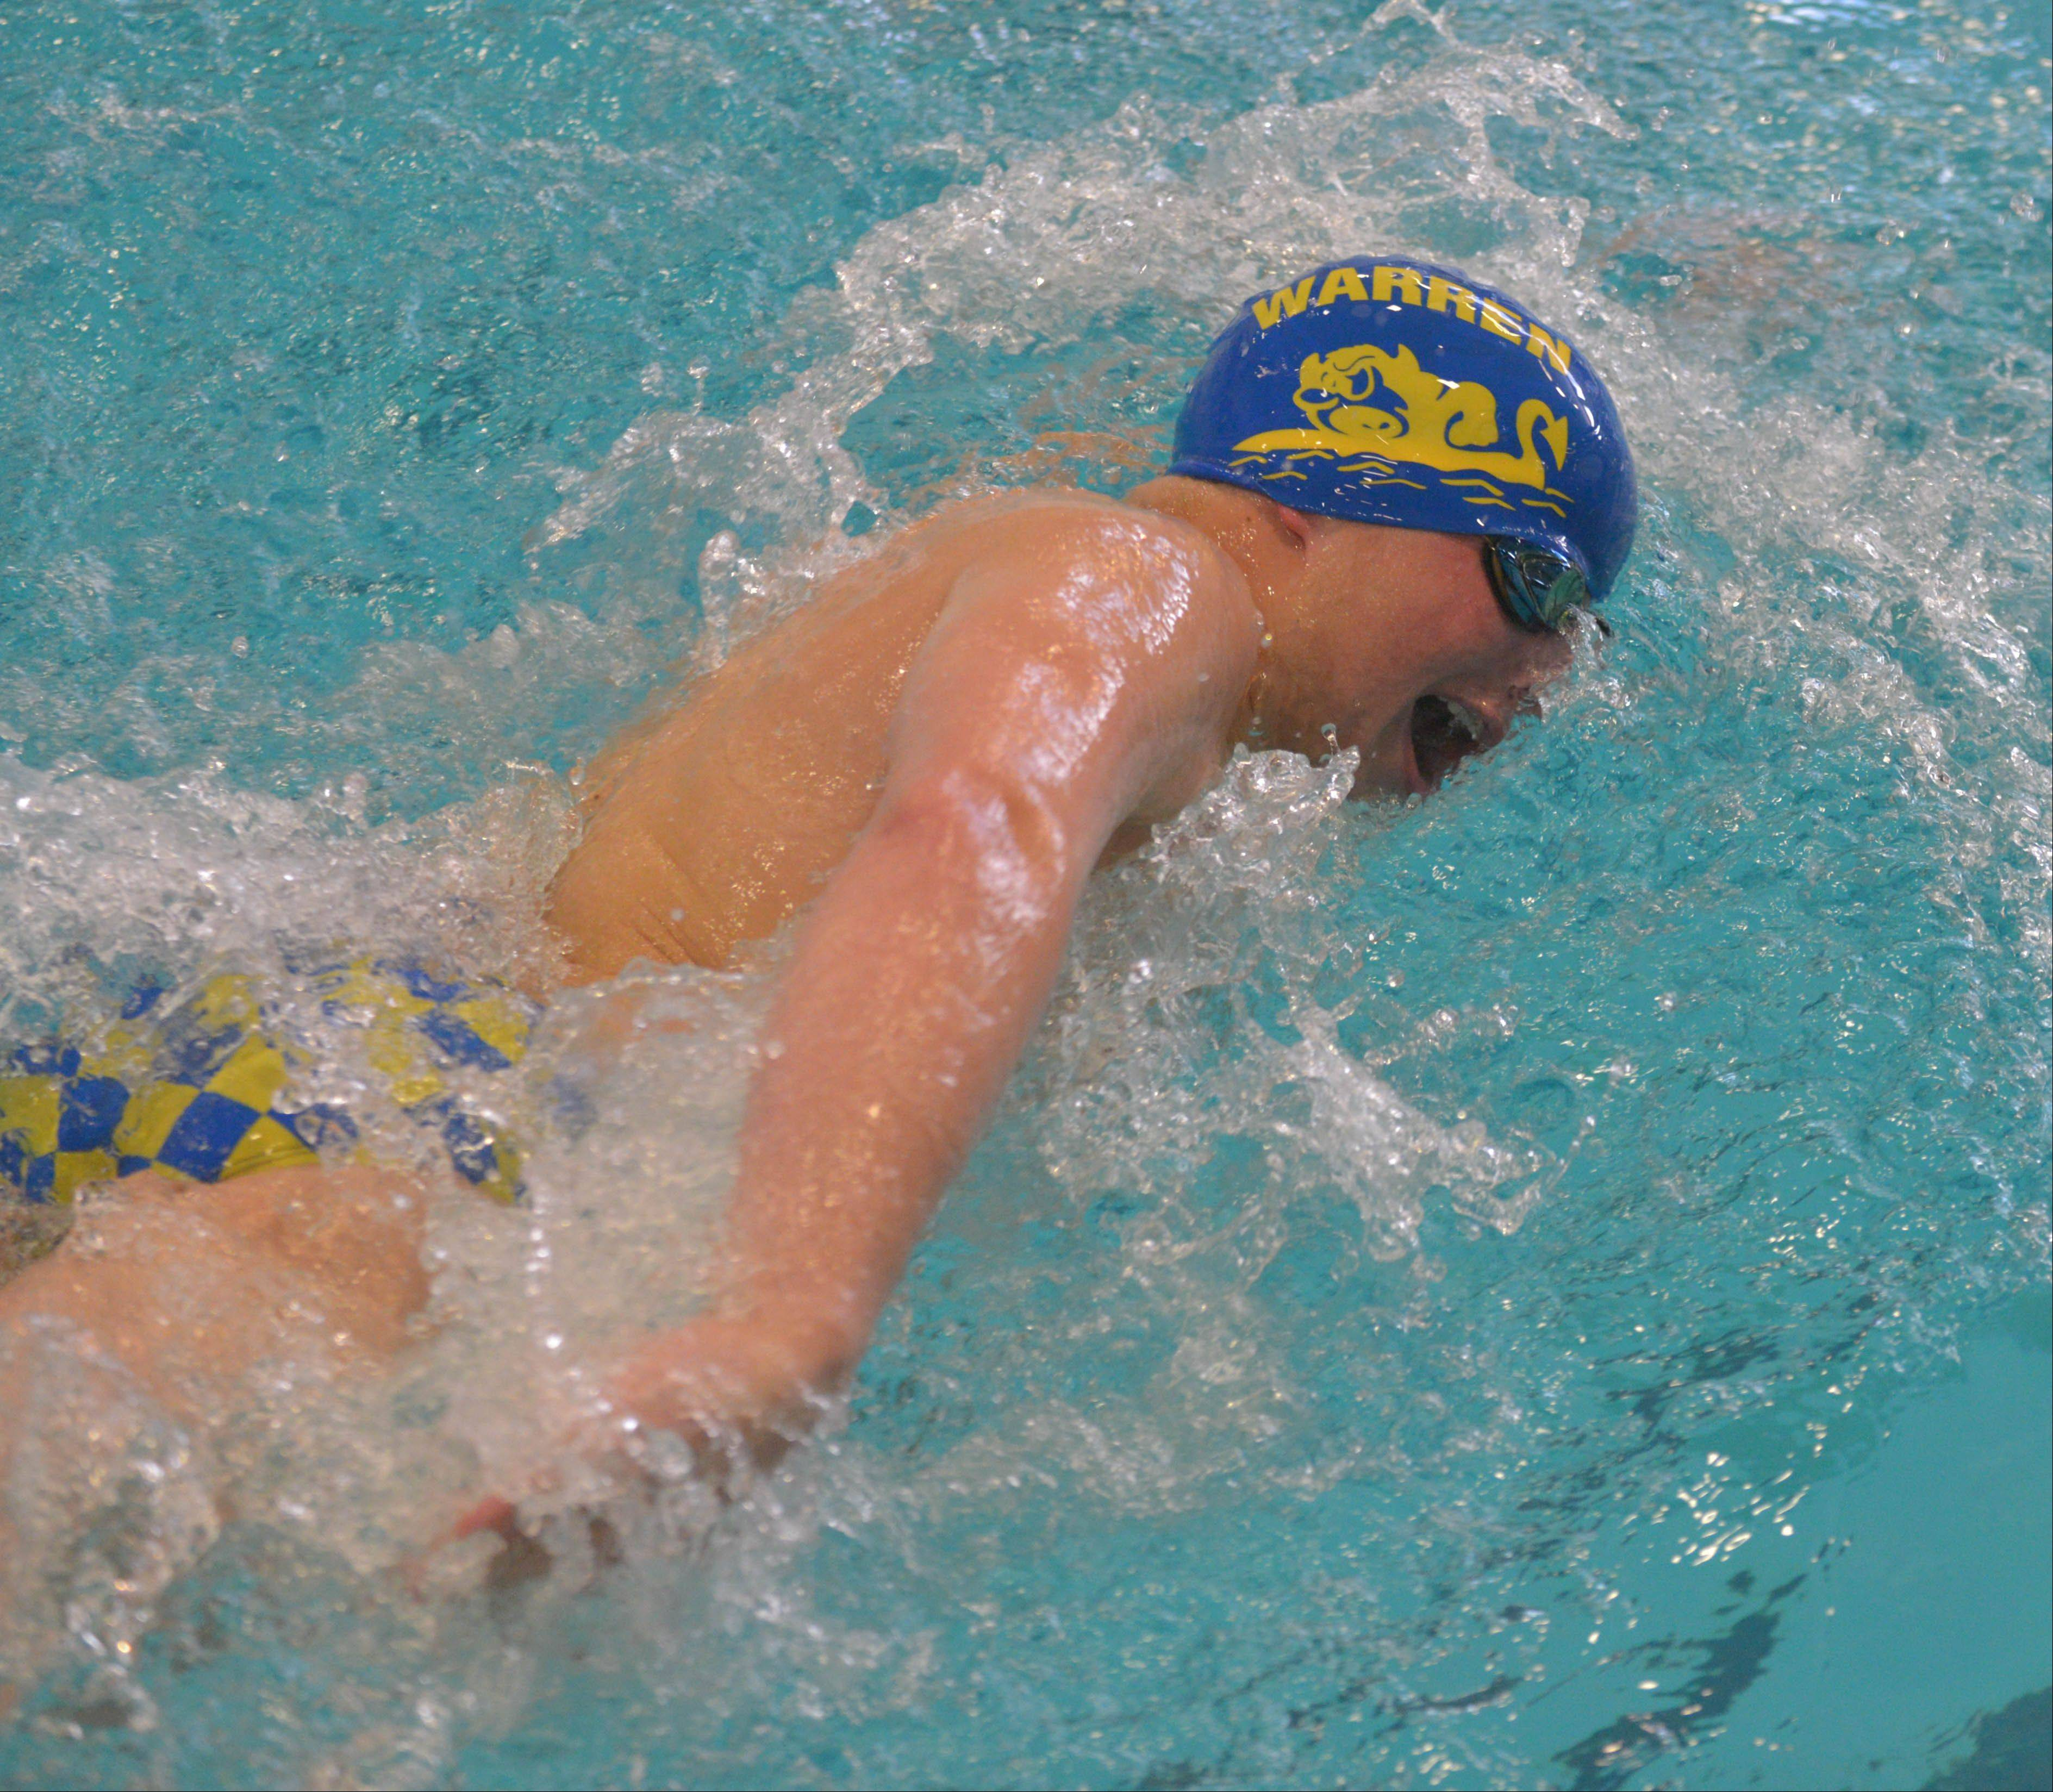 Austin Salisbury of Warren too part in the 200 Free during the Hinsdale Central boys swimming invitational Saturday.